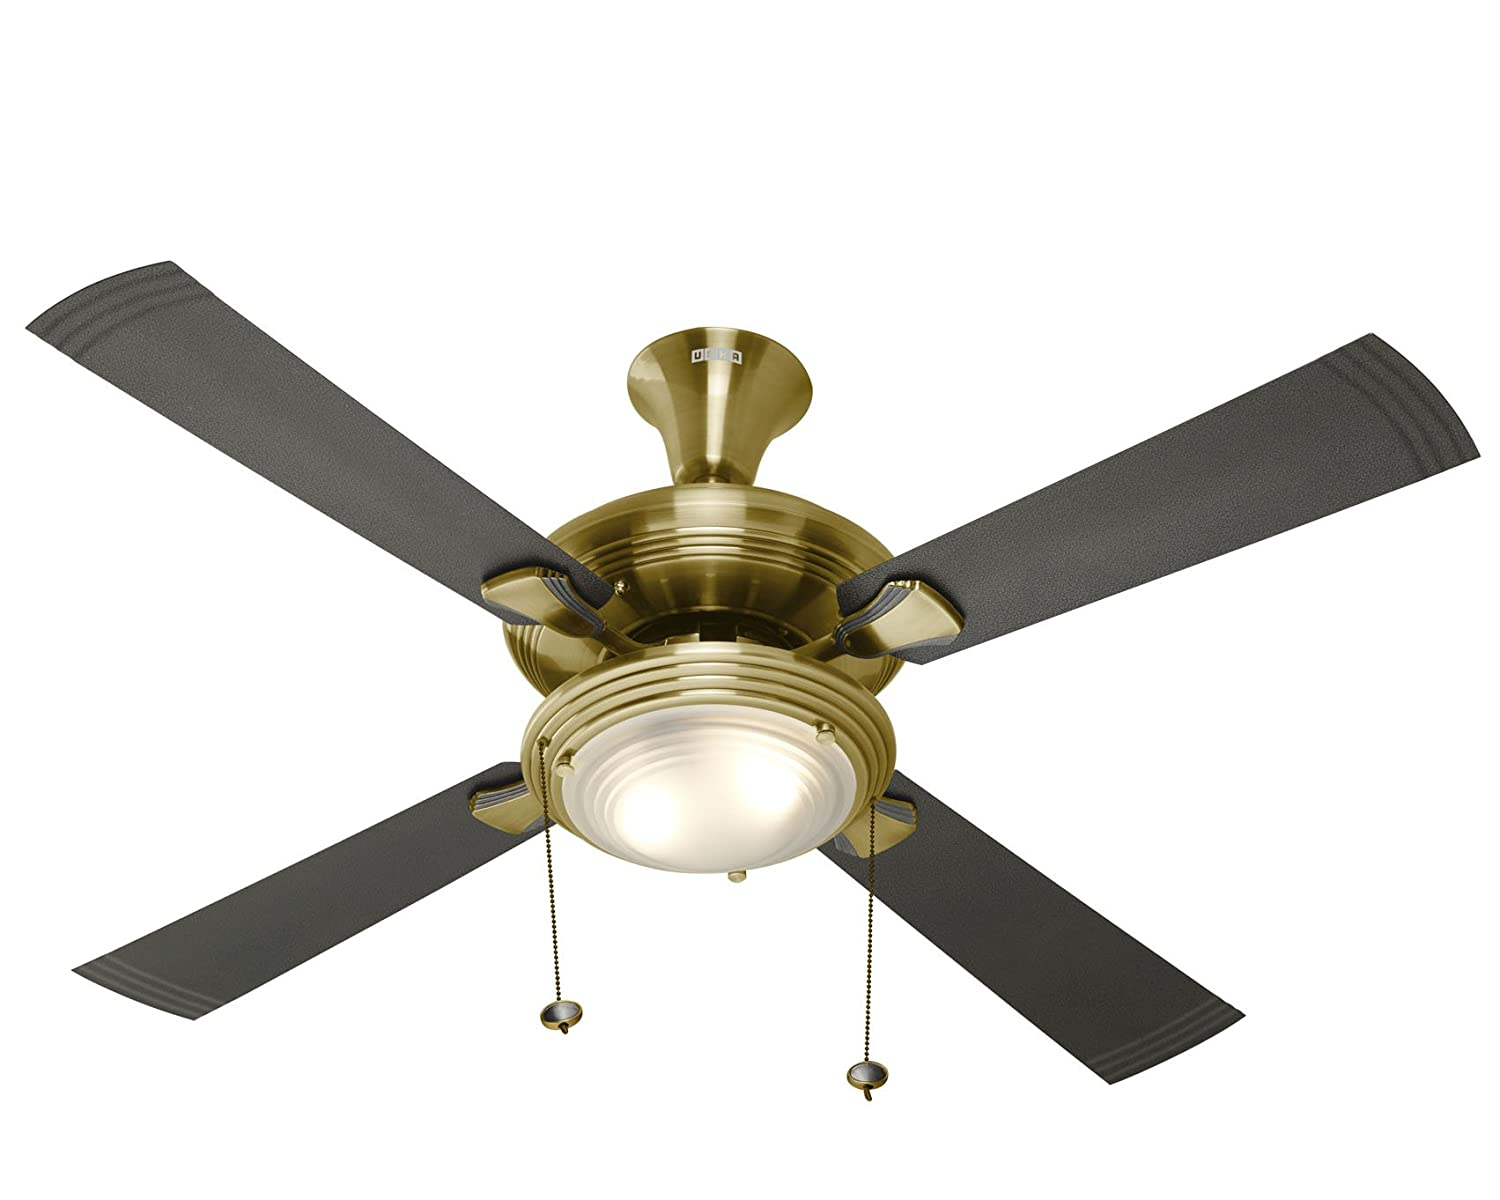 Usha Fontana One 1270mm Ceiling Fan with Decorative Lights